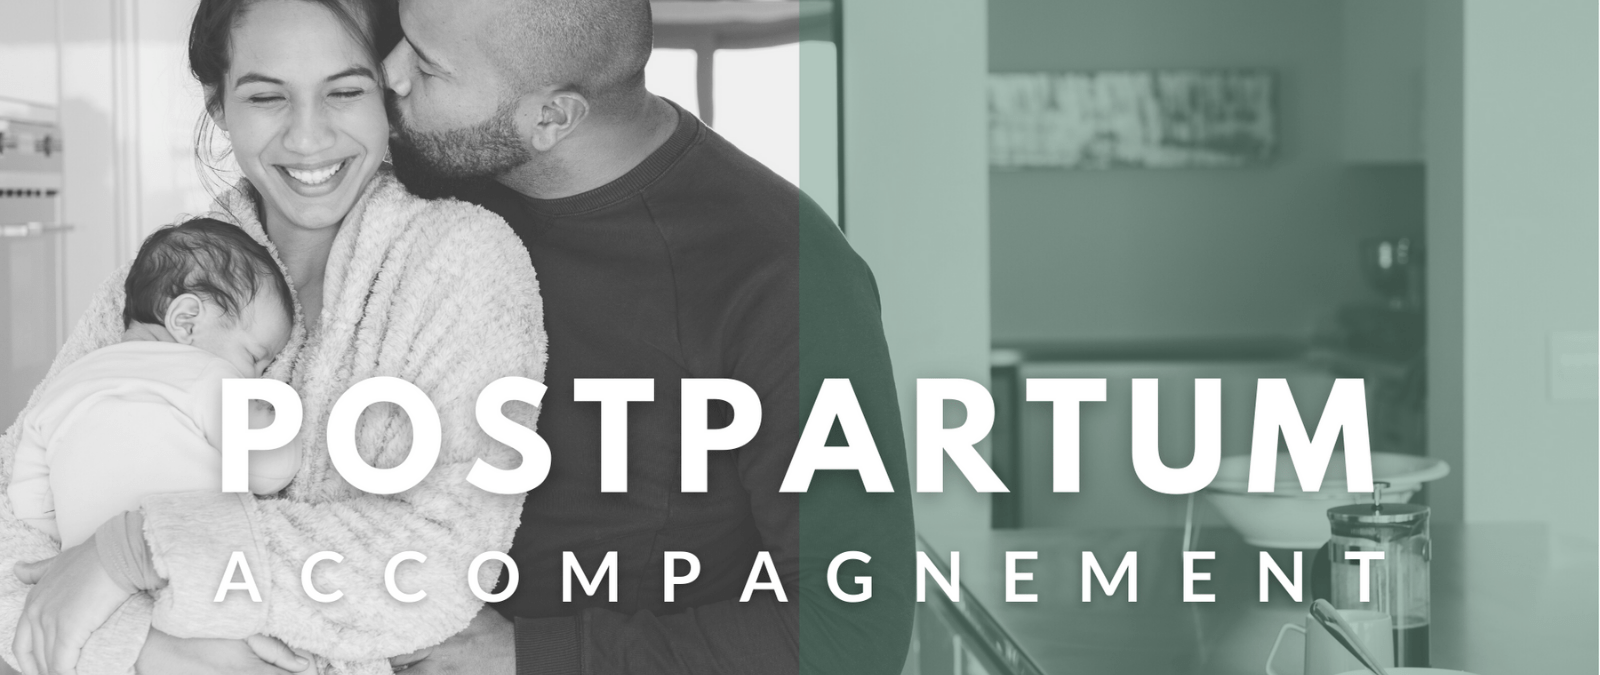 Doula accompagnement postpartum